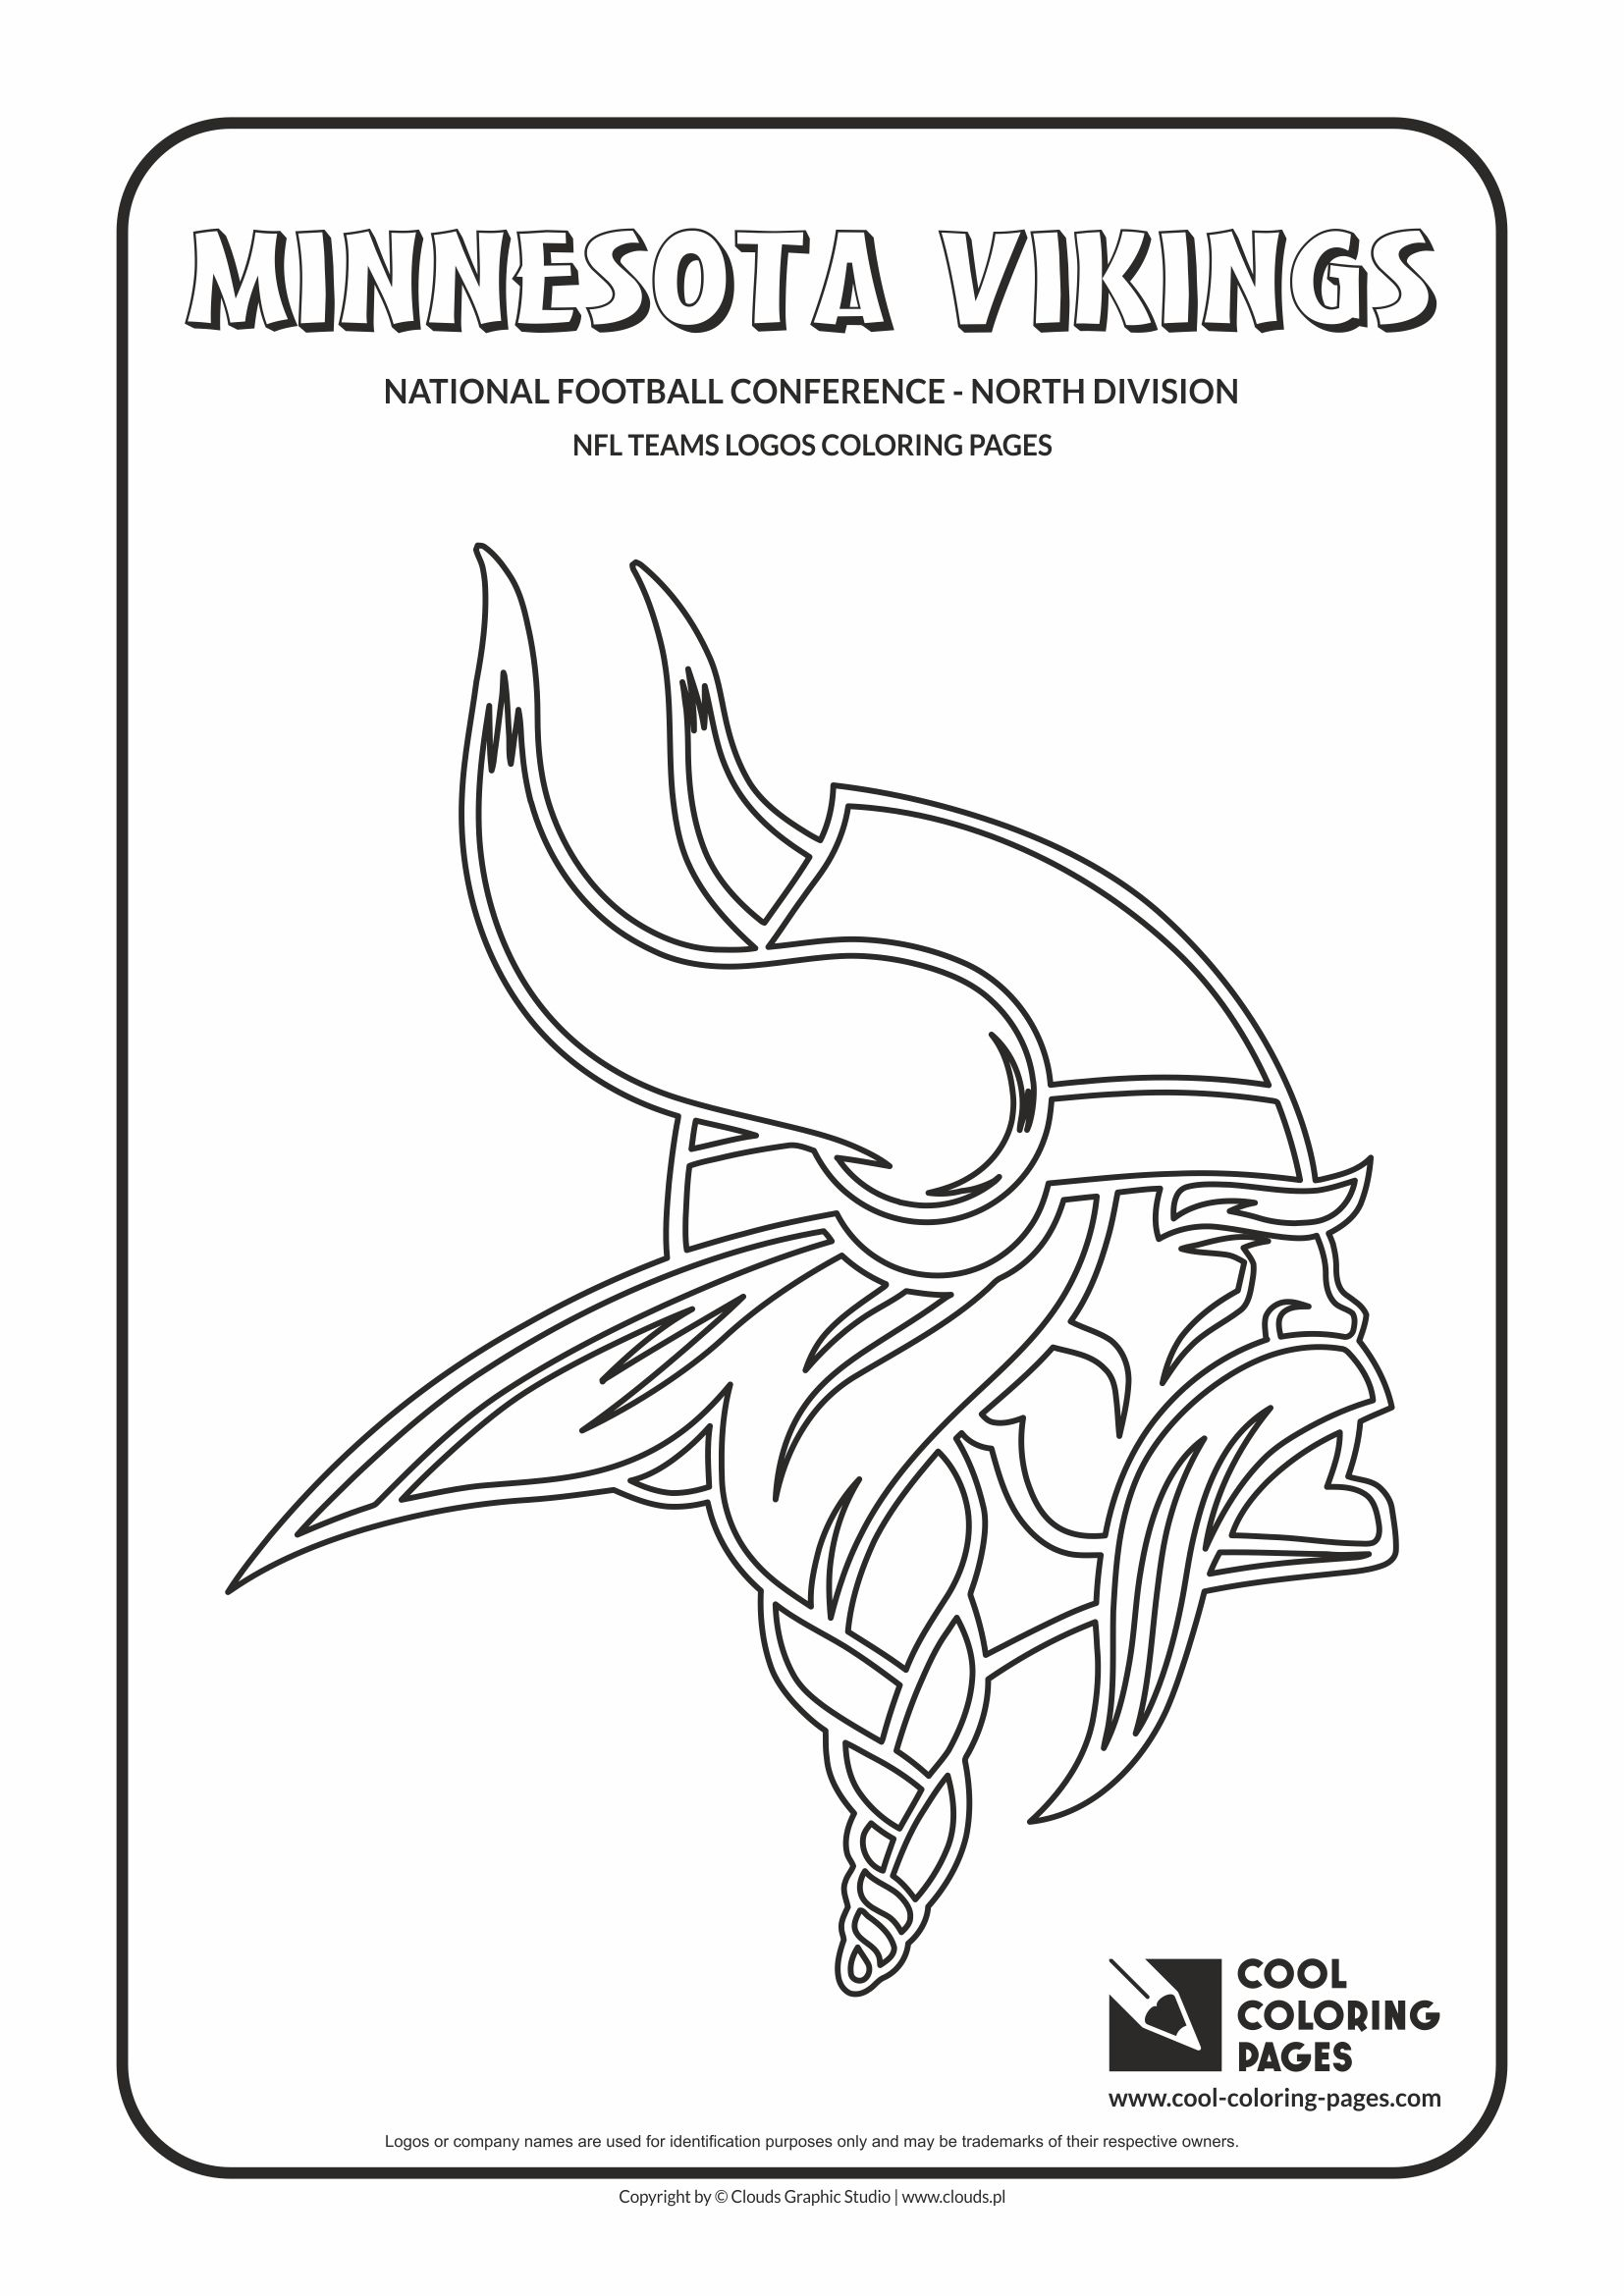 Cool Coloring Pages Nfl Teams Logos Coloring Pages Cool Coloring Pages Free Educational